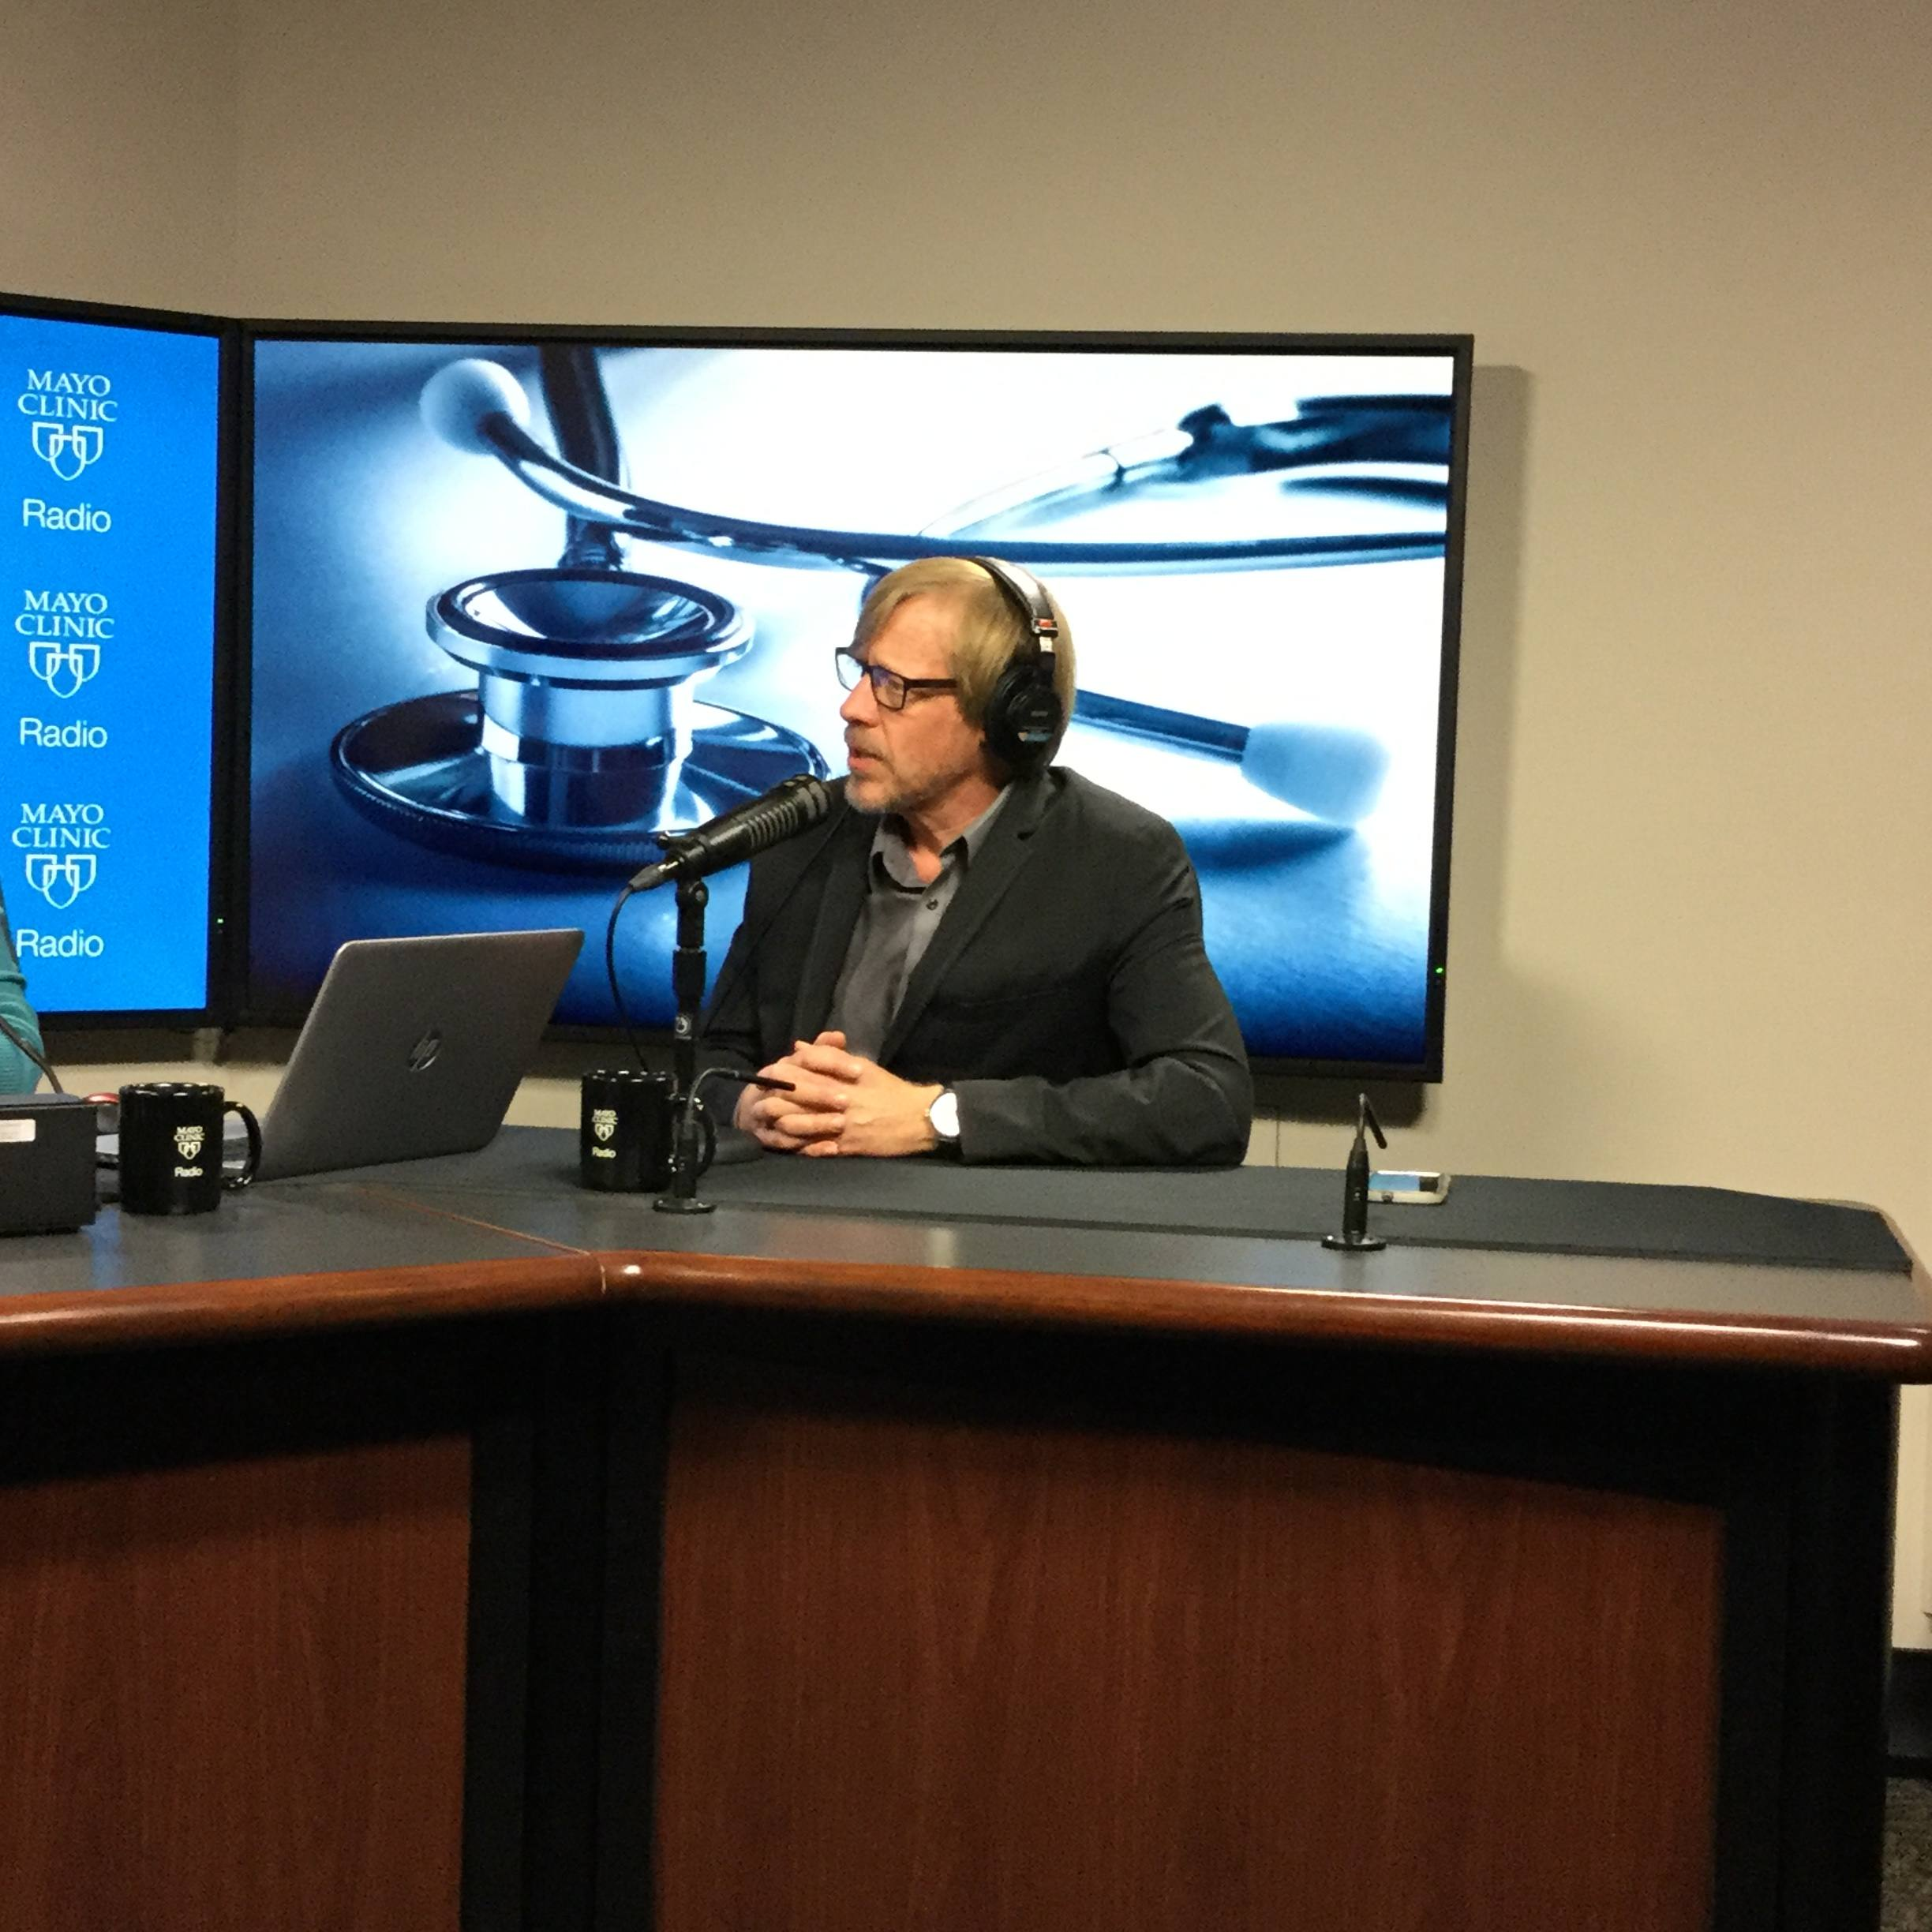 Dr. Keith Knutson being interviewed on Mayo Clinic Radio